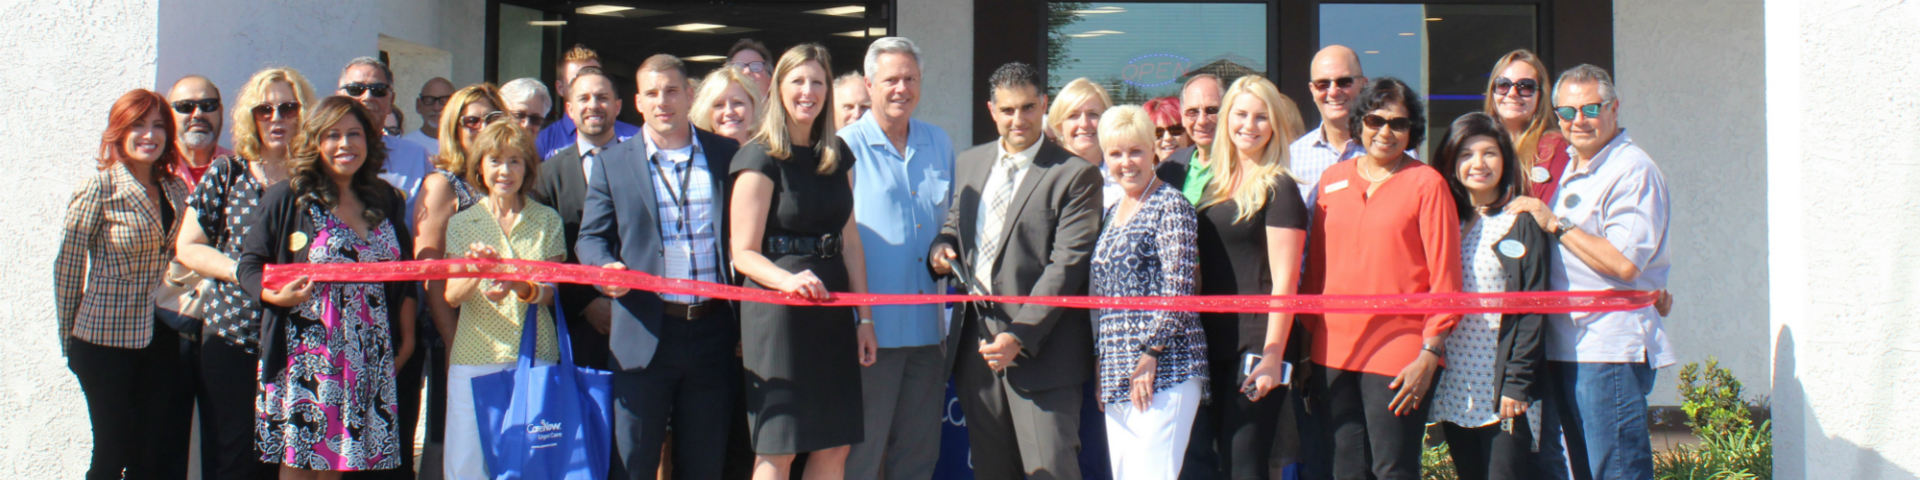 Image of Ribbon Cutting